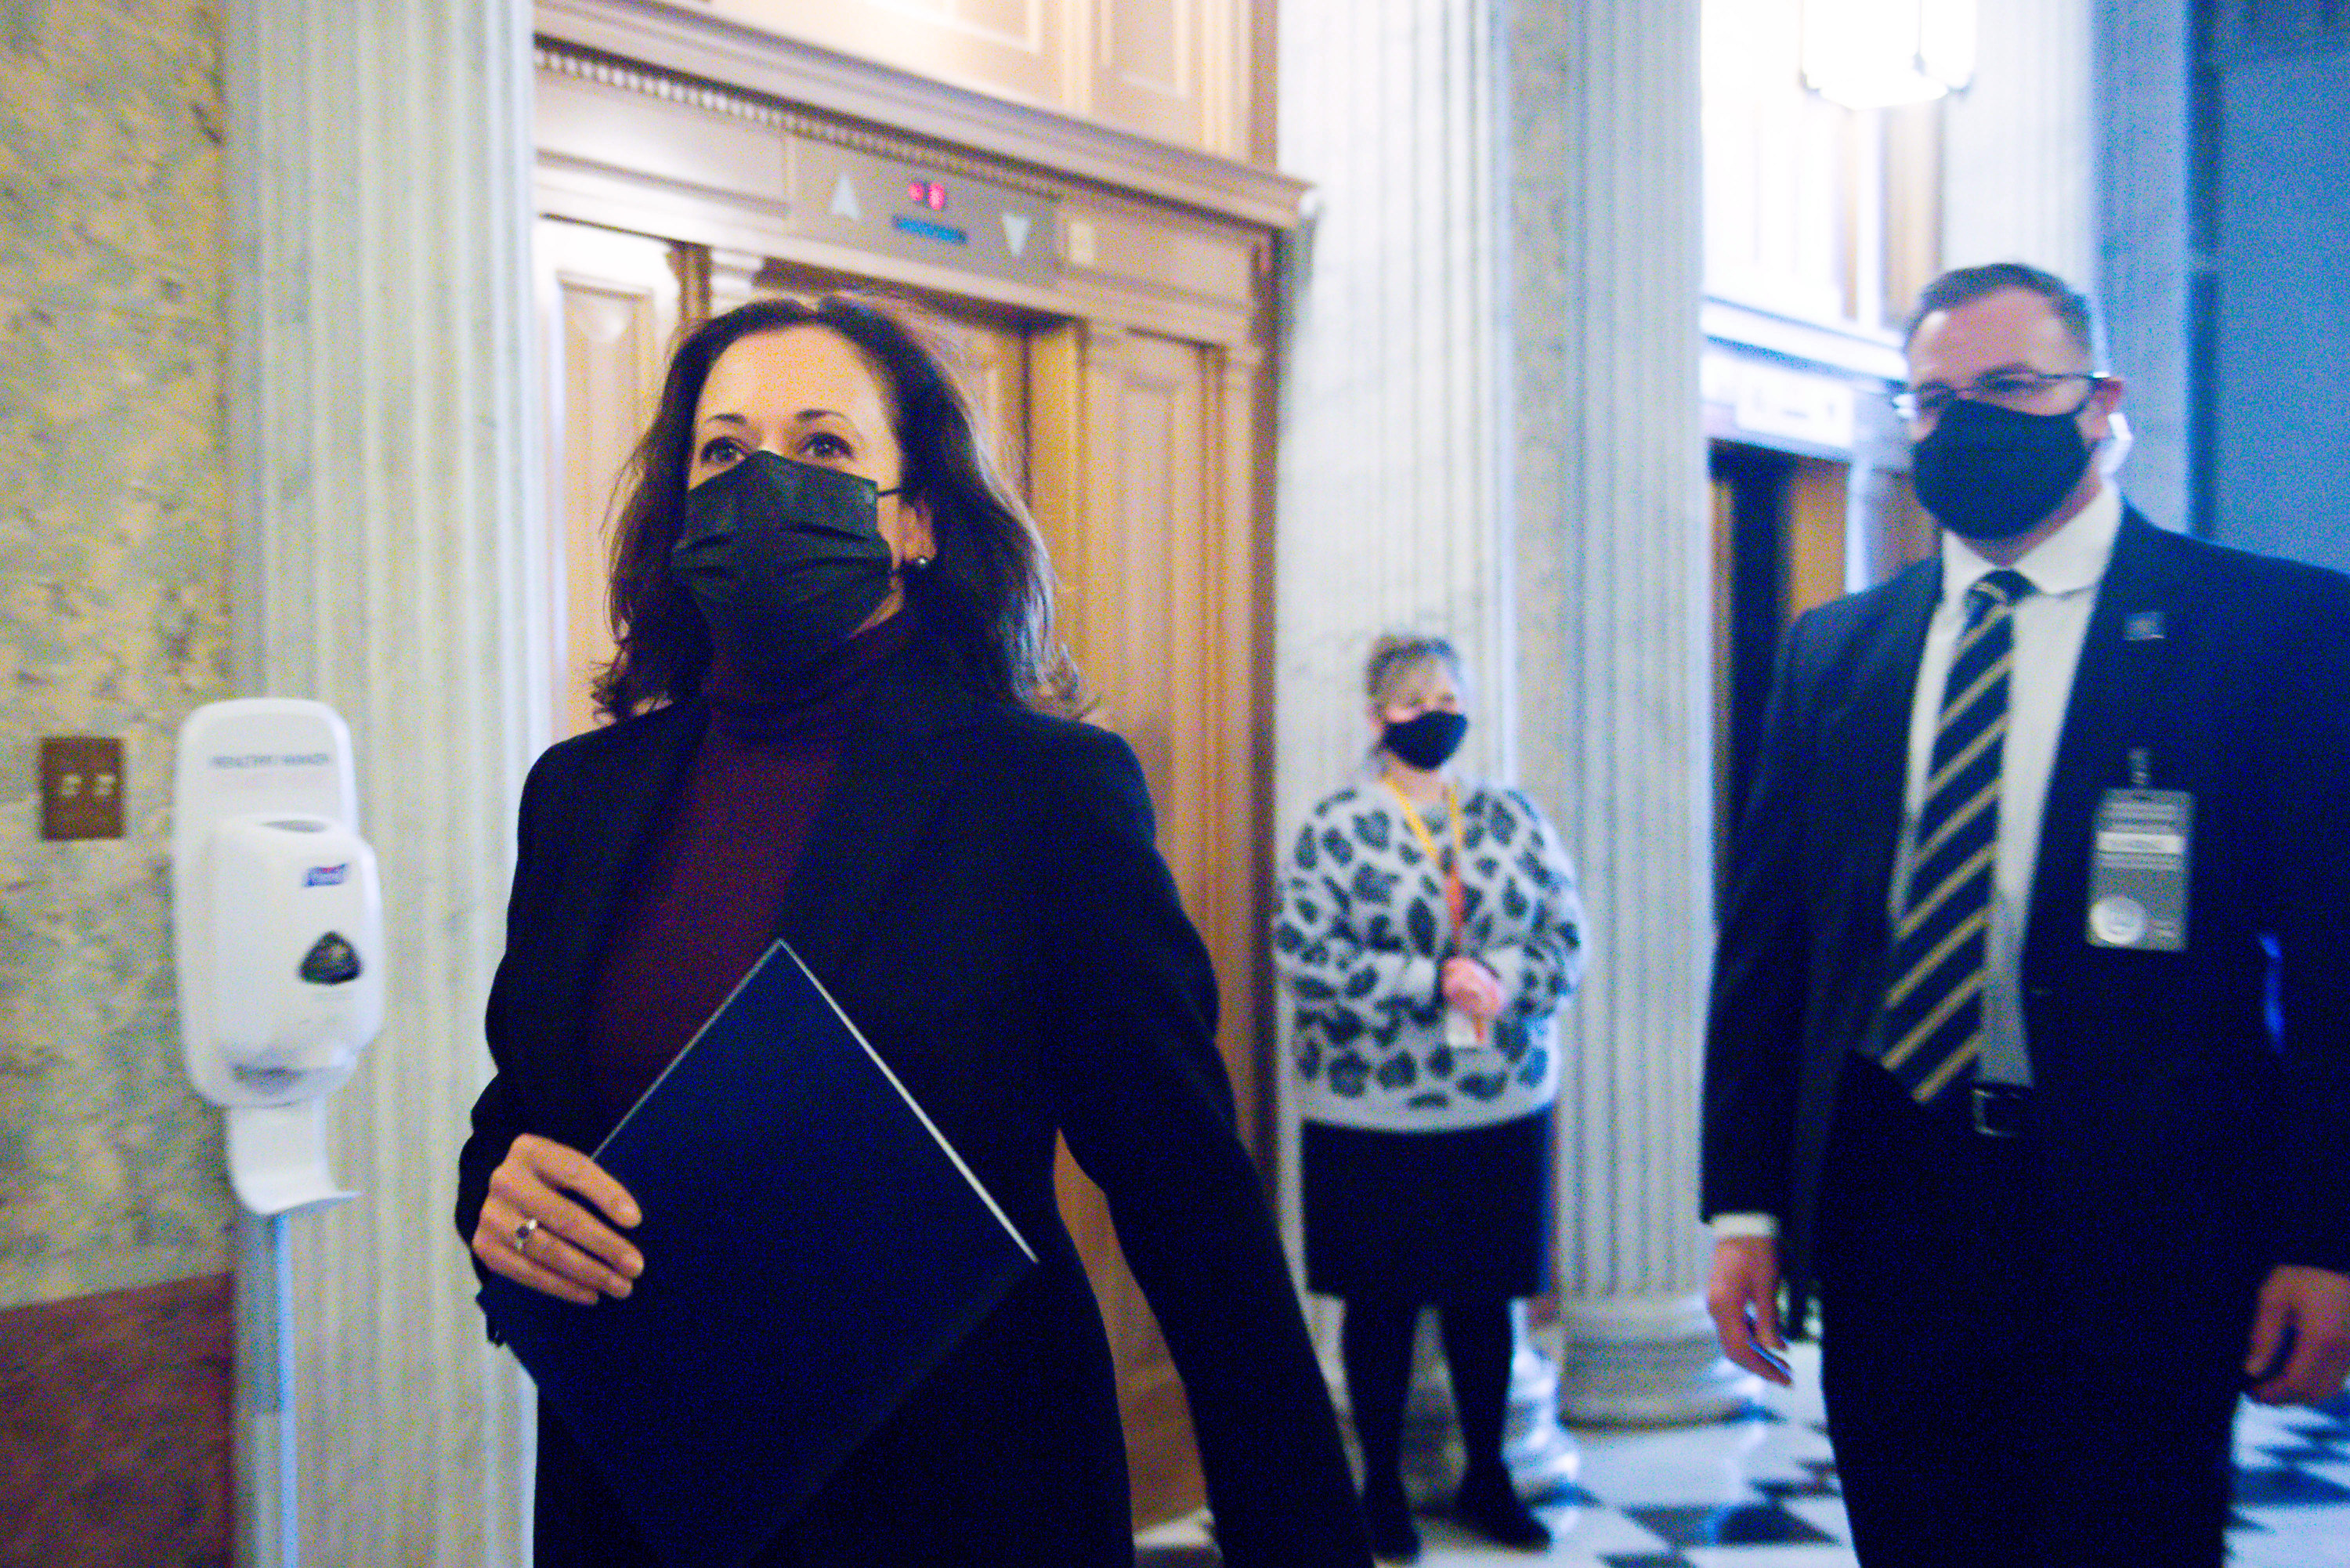 Vice President-elect Kamala Harris arrives at the U.S. Capitol wearing a mask to vote on January 1, 2021 in Washington, DC